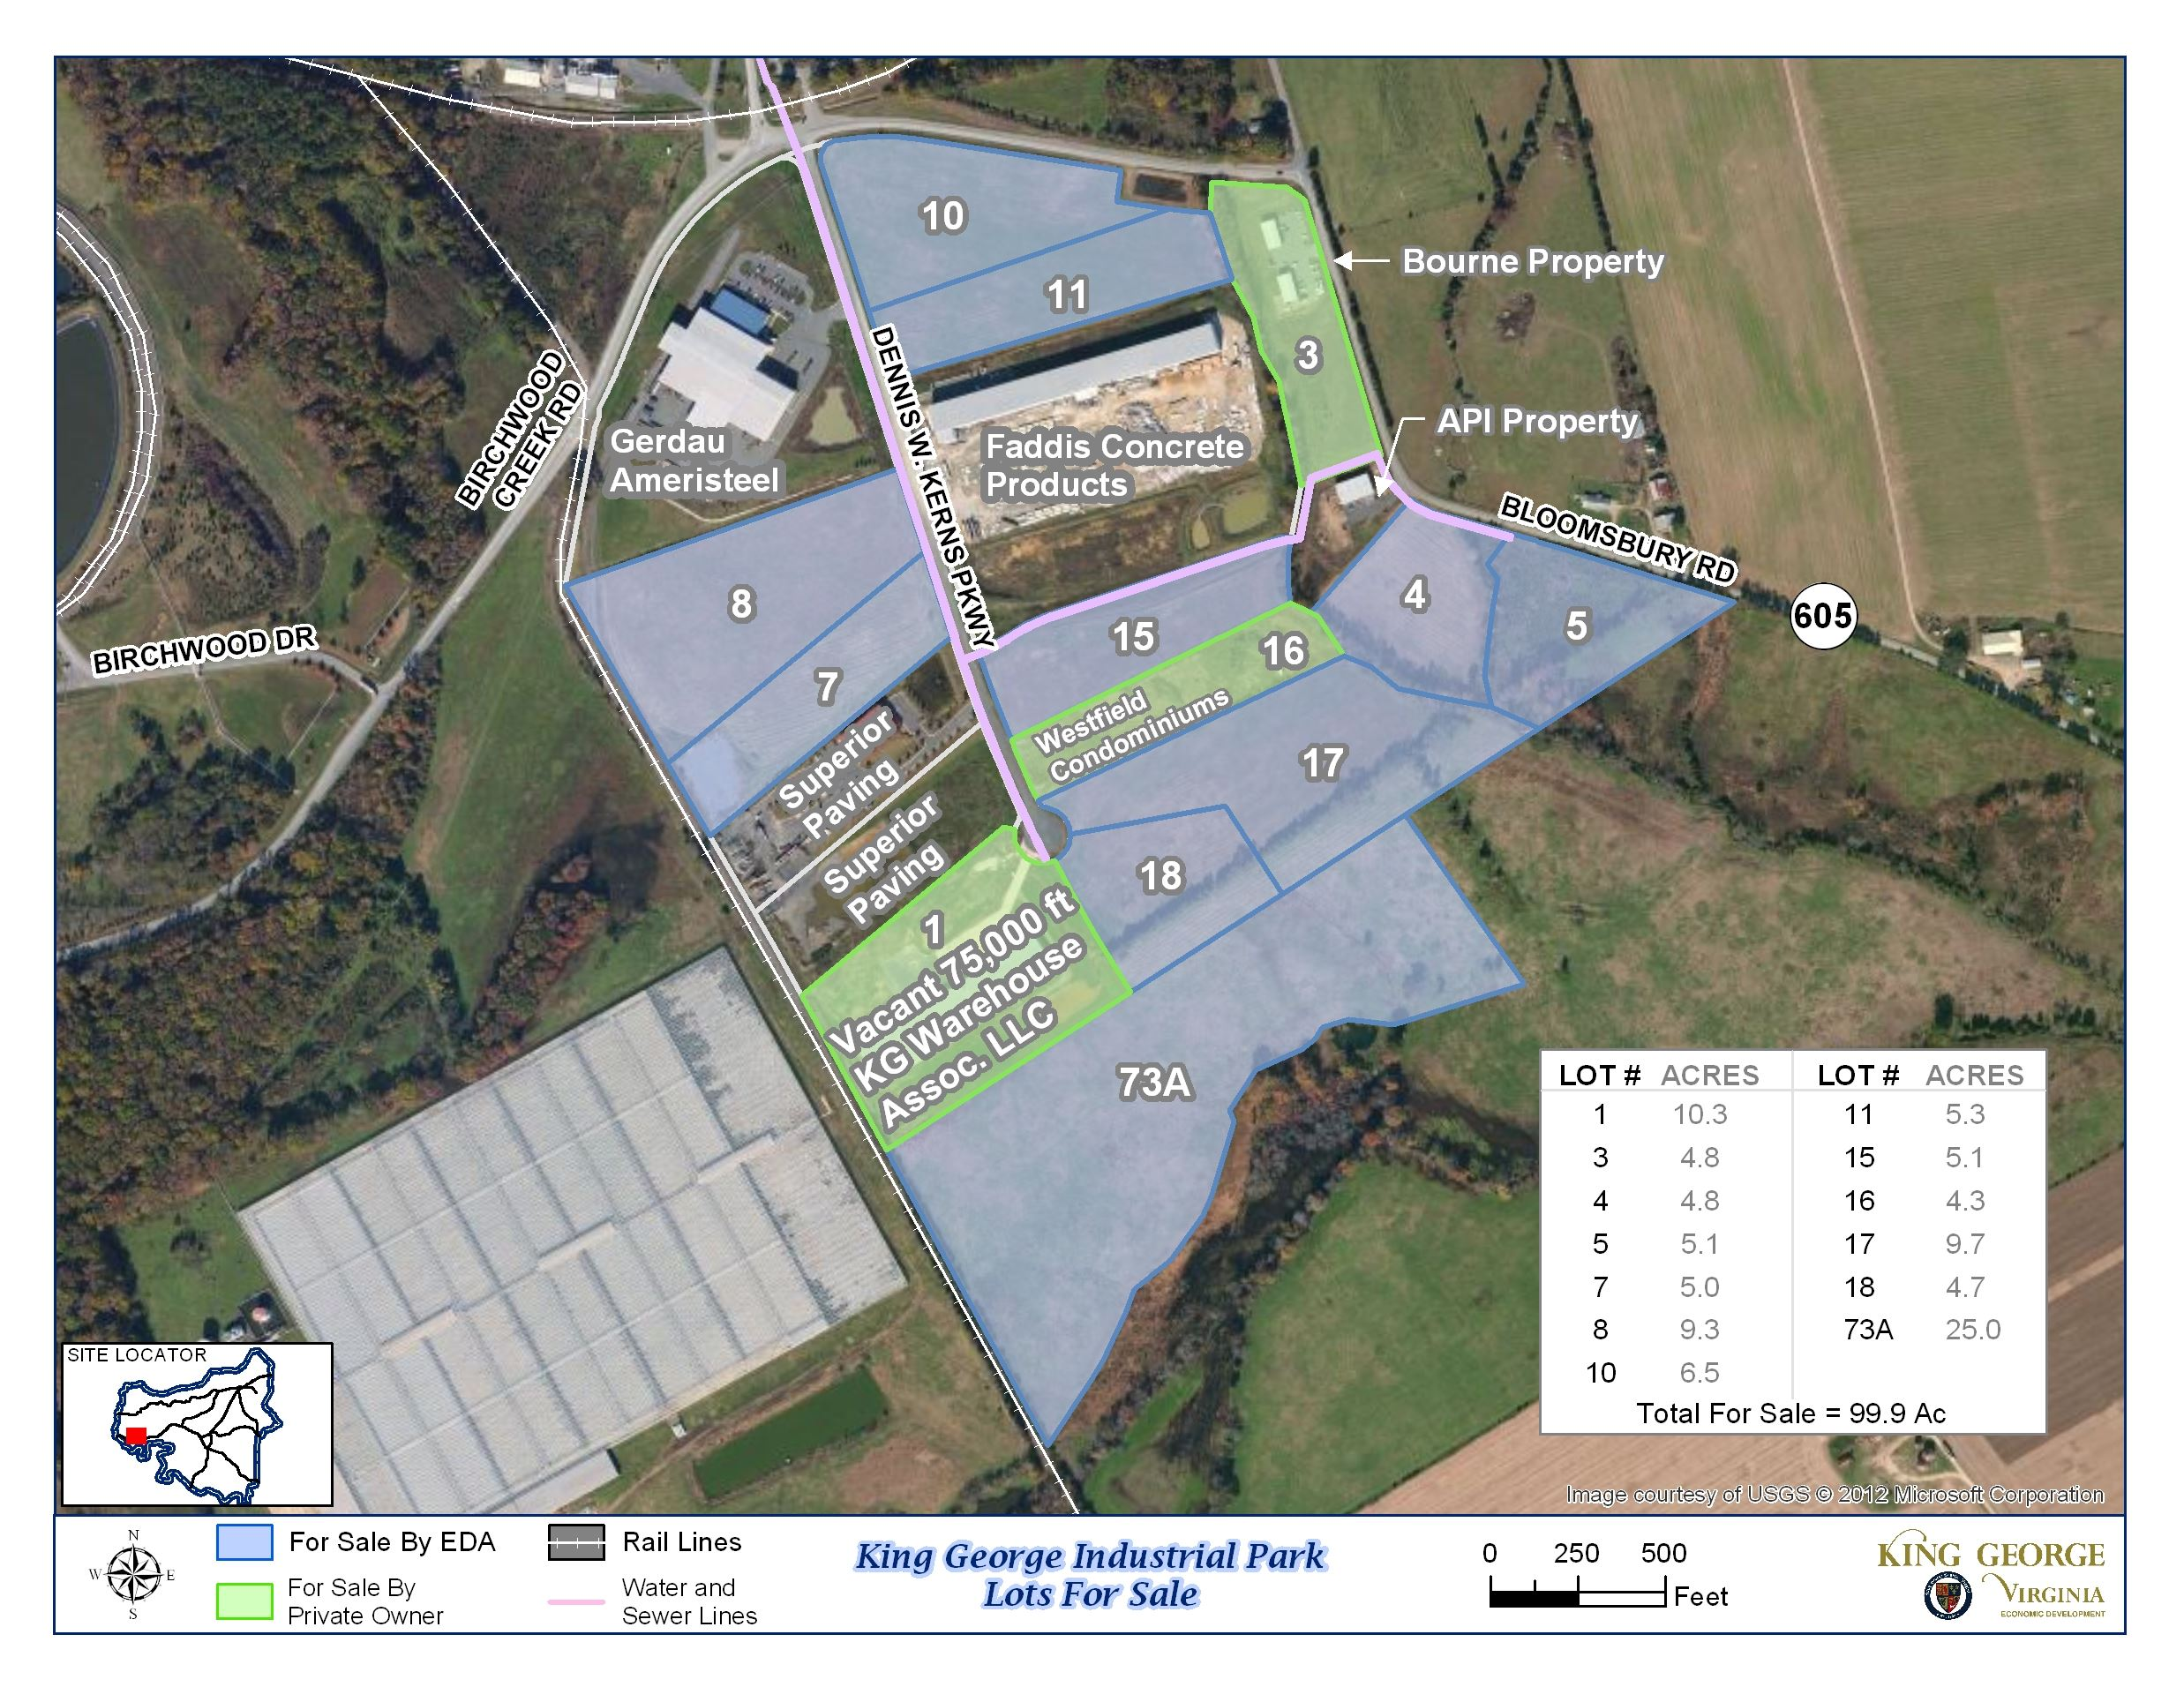 Industrial Park Lots For Sale Map